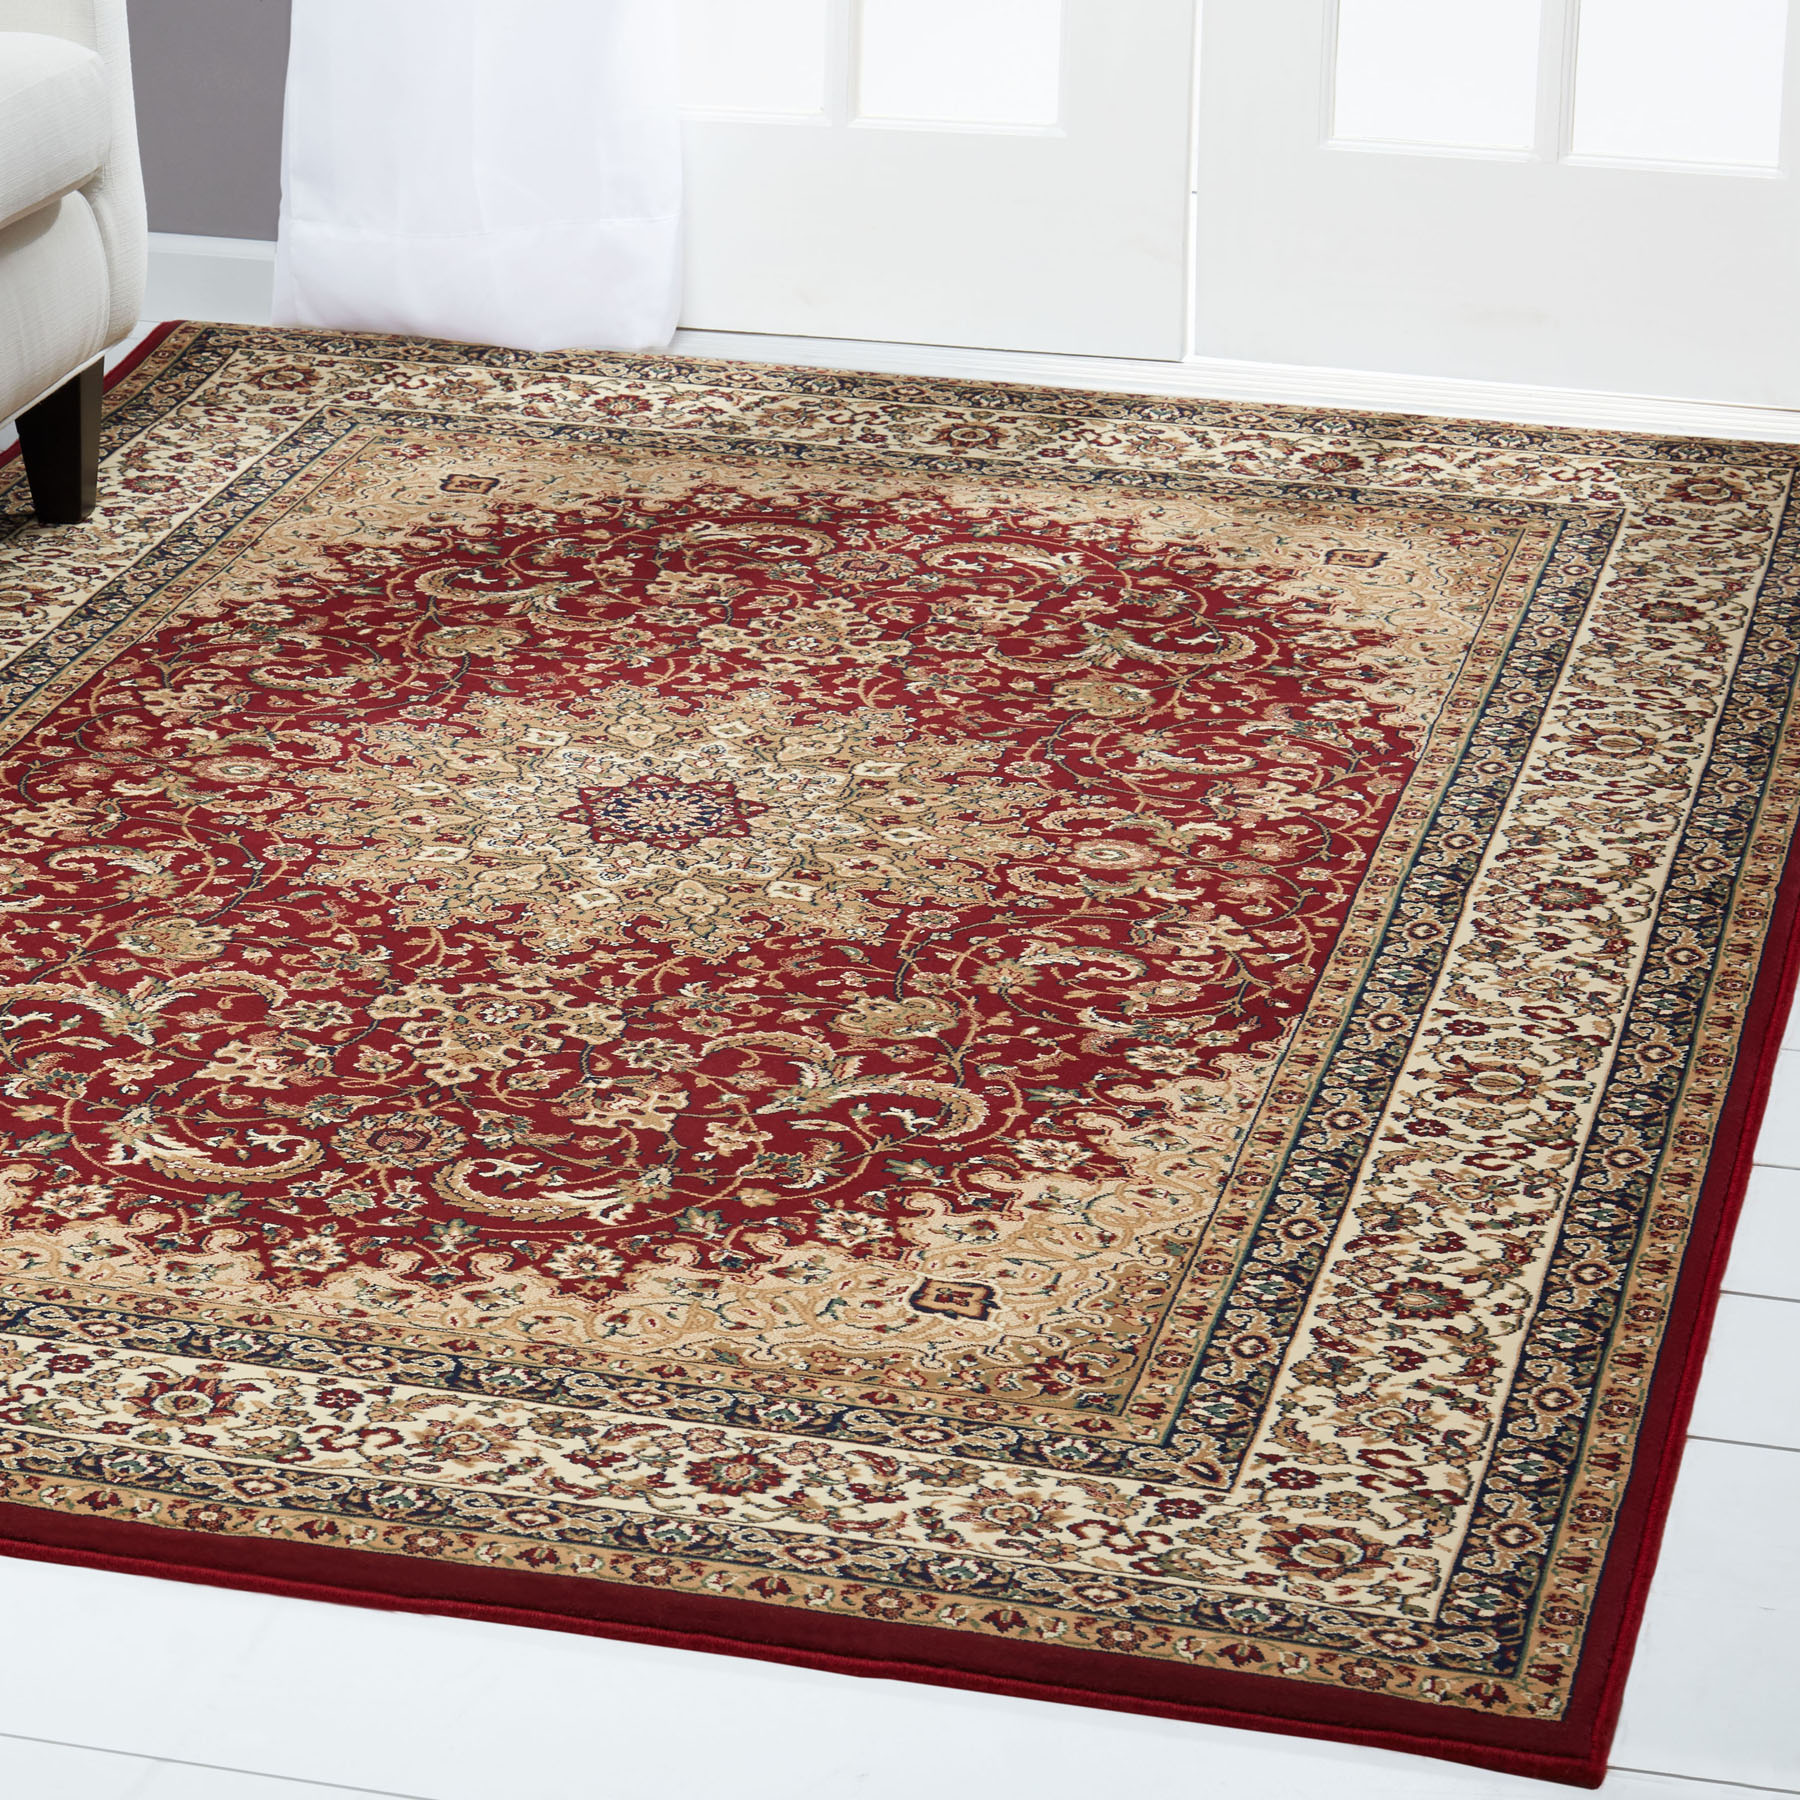 Free S H Red Persian Area Rug 8 X 11 Oriental Carpet 1 Actual 7